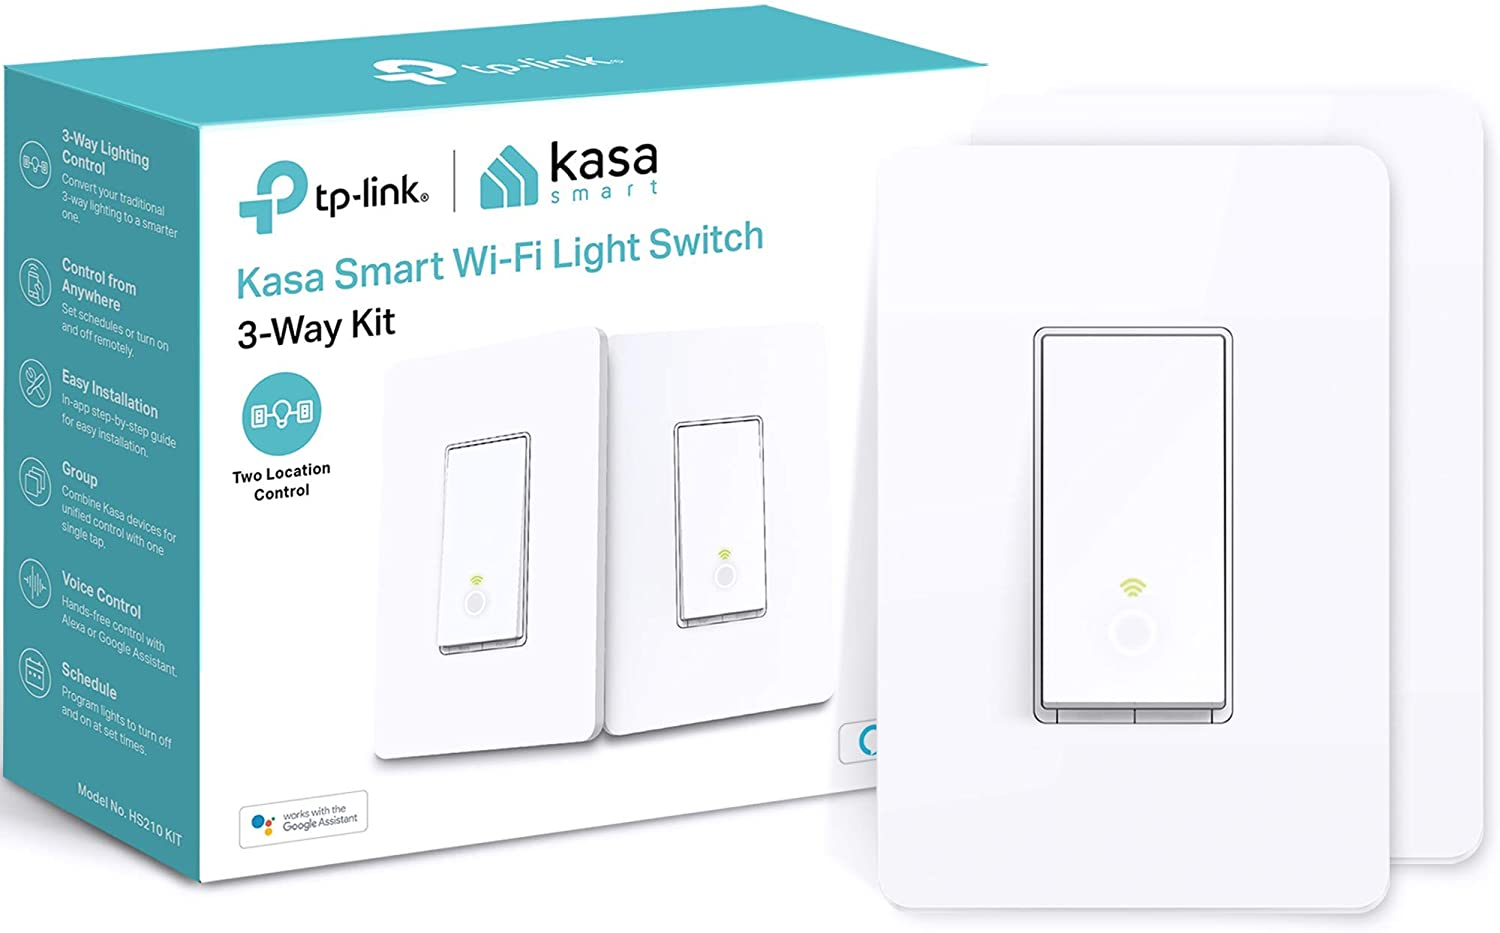 Kasa Smart 3 Way Switch HS210 Wi Large Arlington Mall special price KIT Neutral Needs Wire 2.4GHz